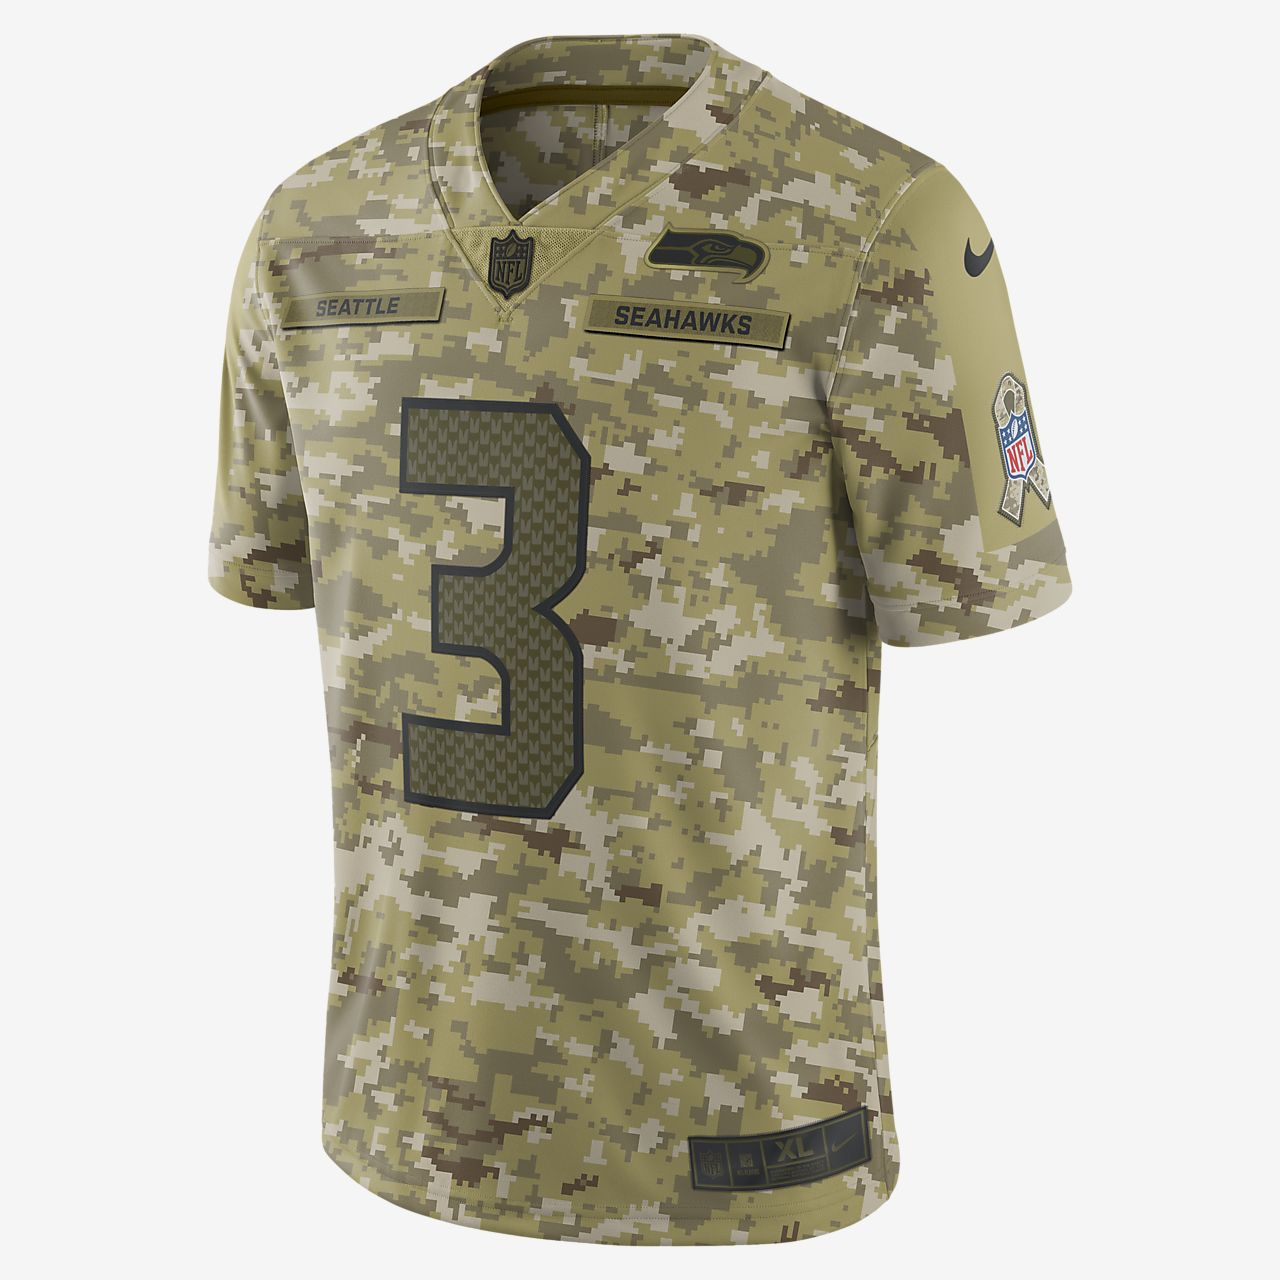 ed33d3b7cb9 Big Kids' Football Jersey. NFL Seattle Seahawks Salute to Service (Russell  Wilson)